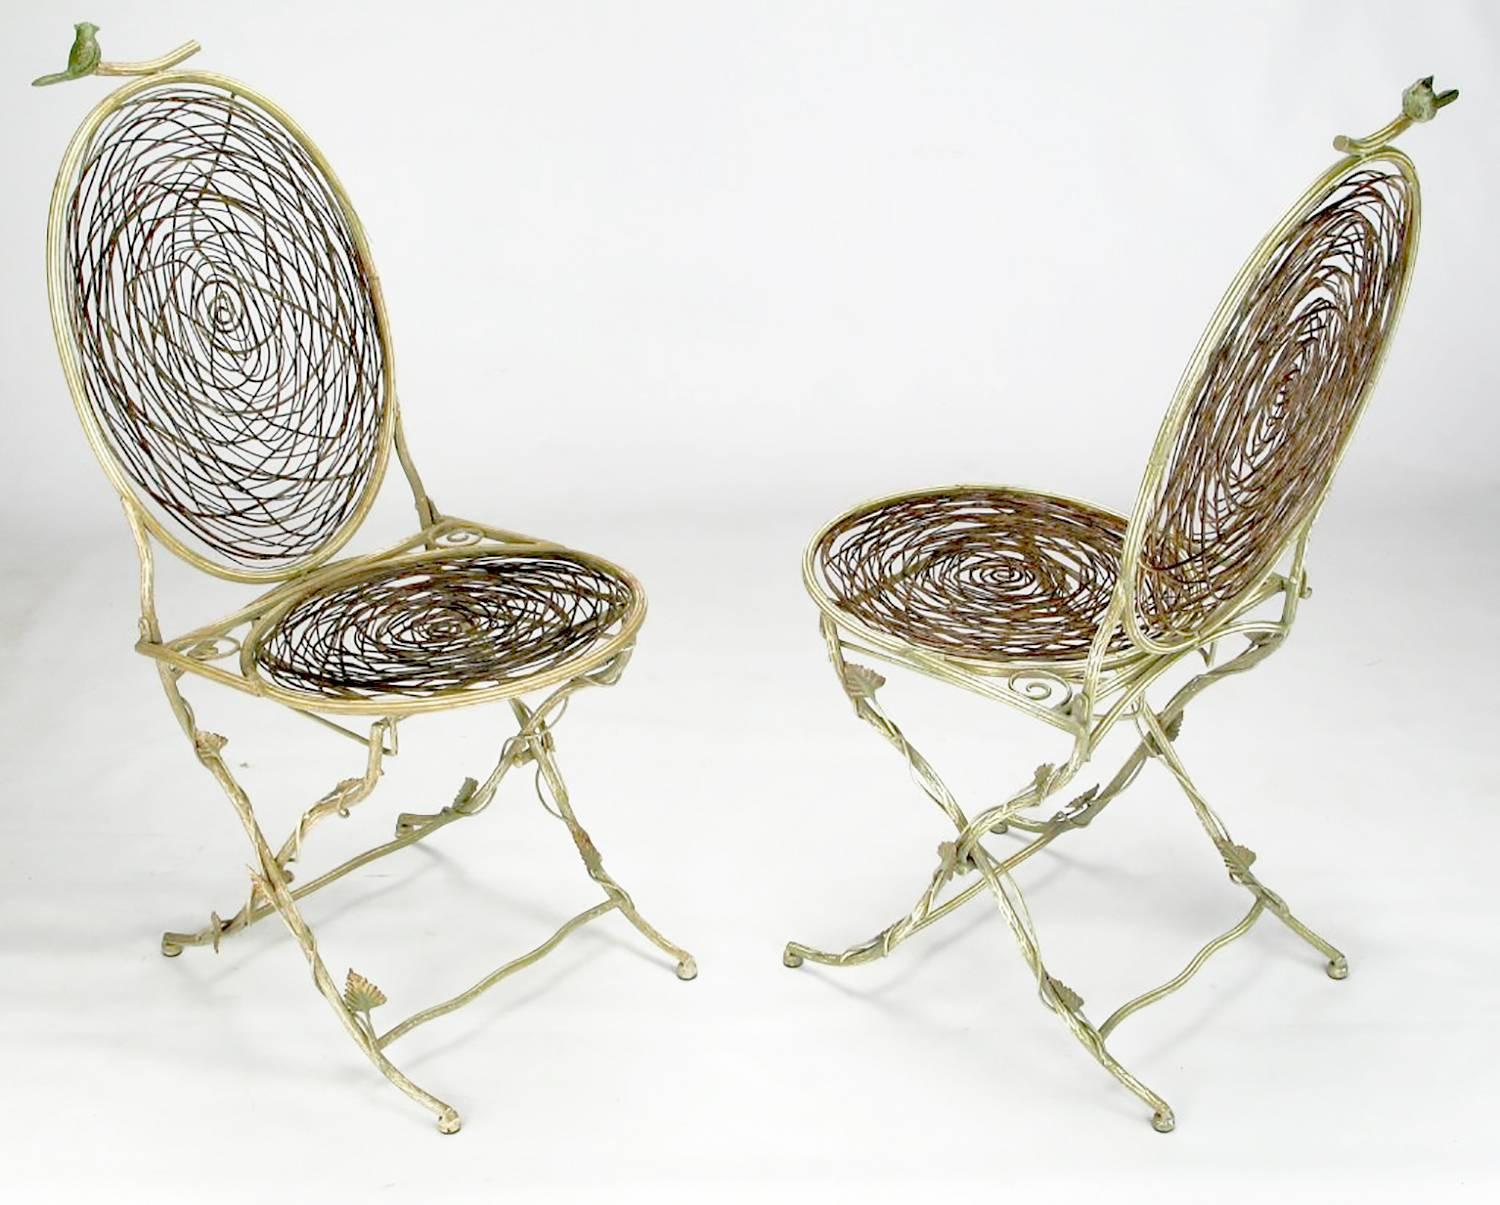 Bird Nest Chair Four Iron Faux Bois Folding Chairs With Bird Nest Seats